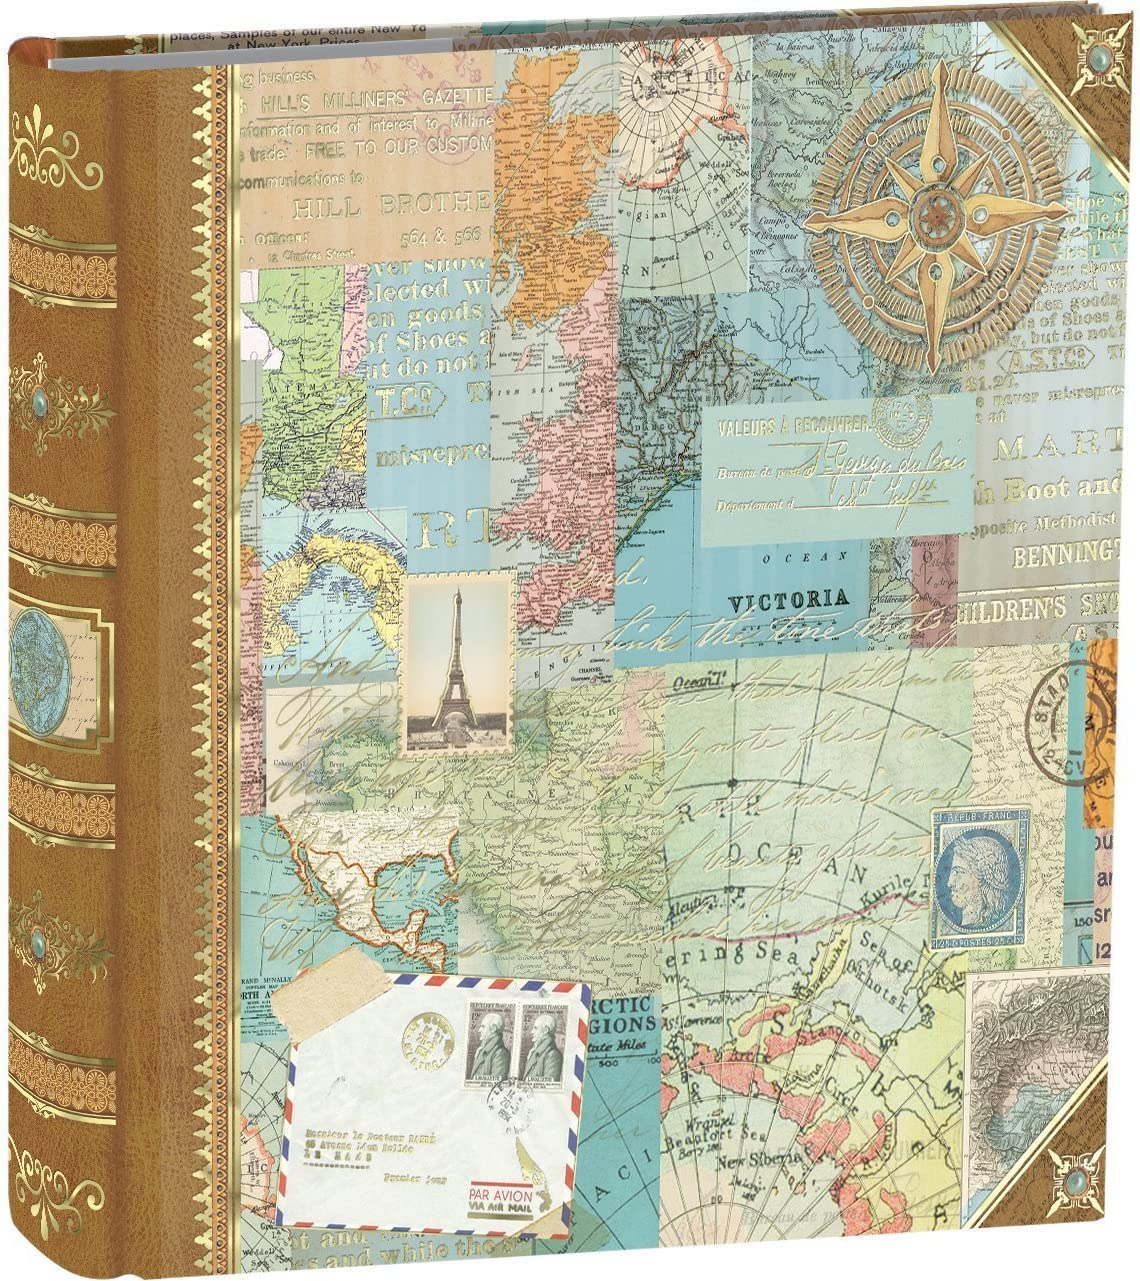 An image of a photo album with World Map as cover design.